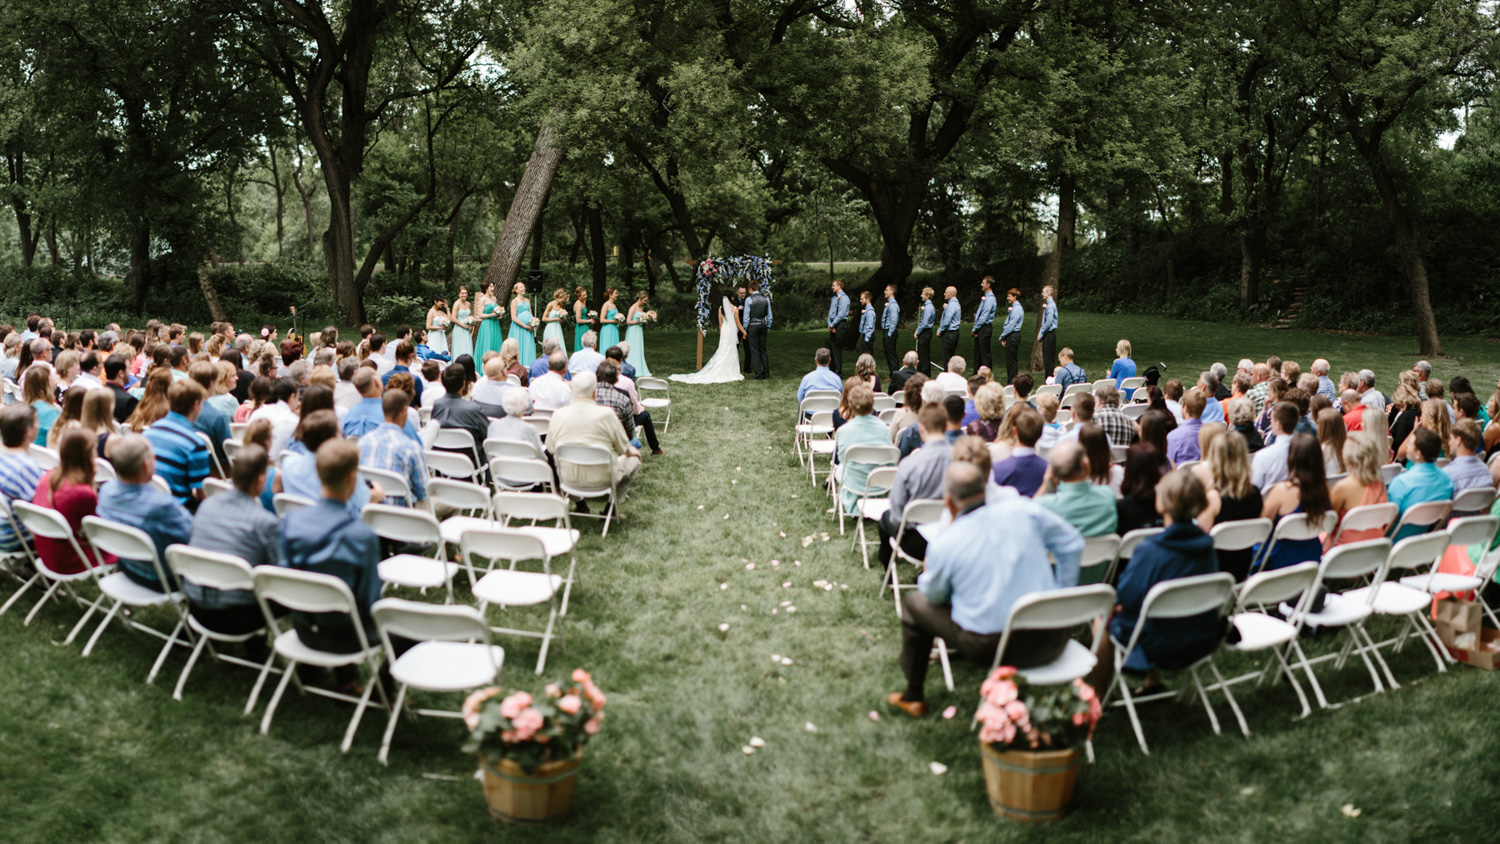 Outdoor_Wedding_SiouxFalls_MaryJoWegnerArboretum_Photographer_Calli&Jon_084.jpg